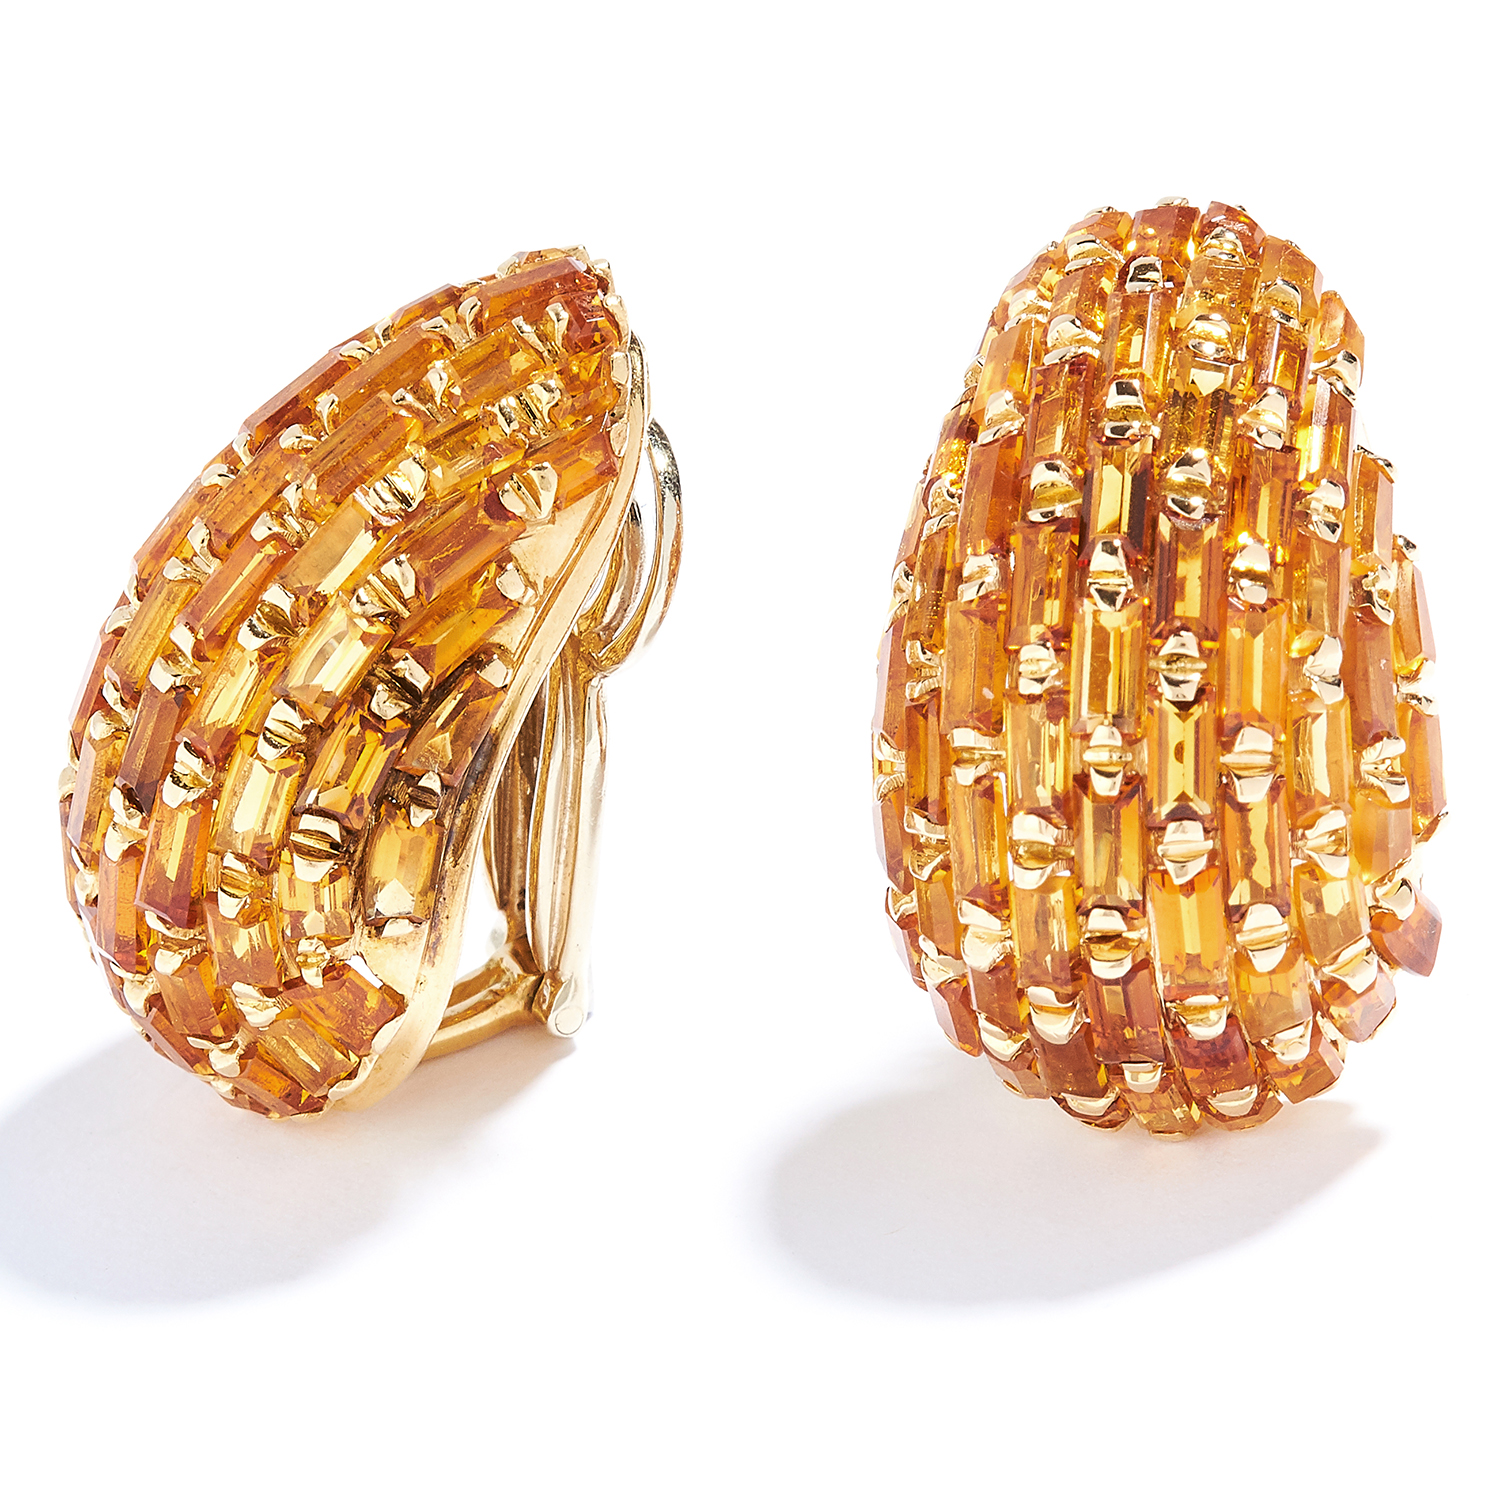 VINTAGE MADEIRA CITRINE CLIP EARRINGS in 18ct yellow gold, set allover with baguette cut citrines, - Bild 2 aus 2